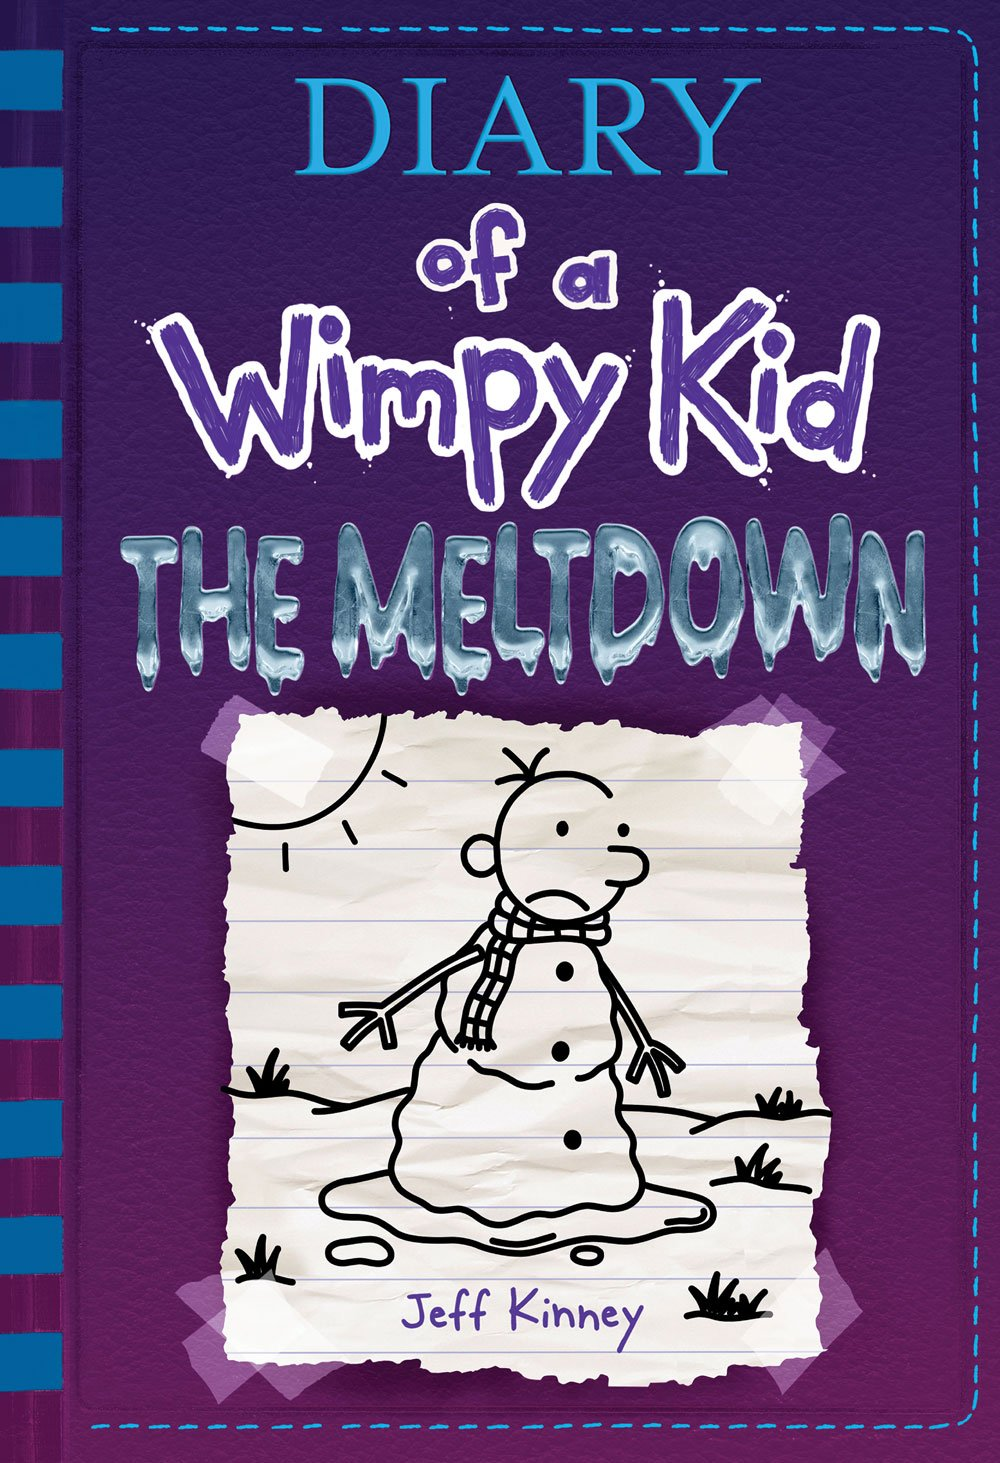 Diary of a Wimpy Kid: The Meltdown by Jeff Kinney